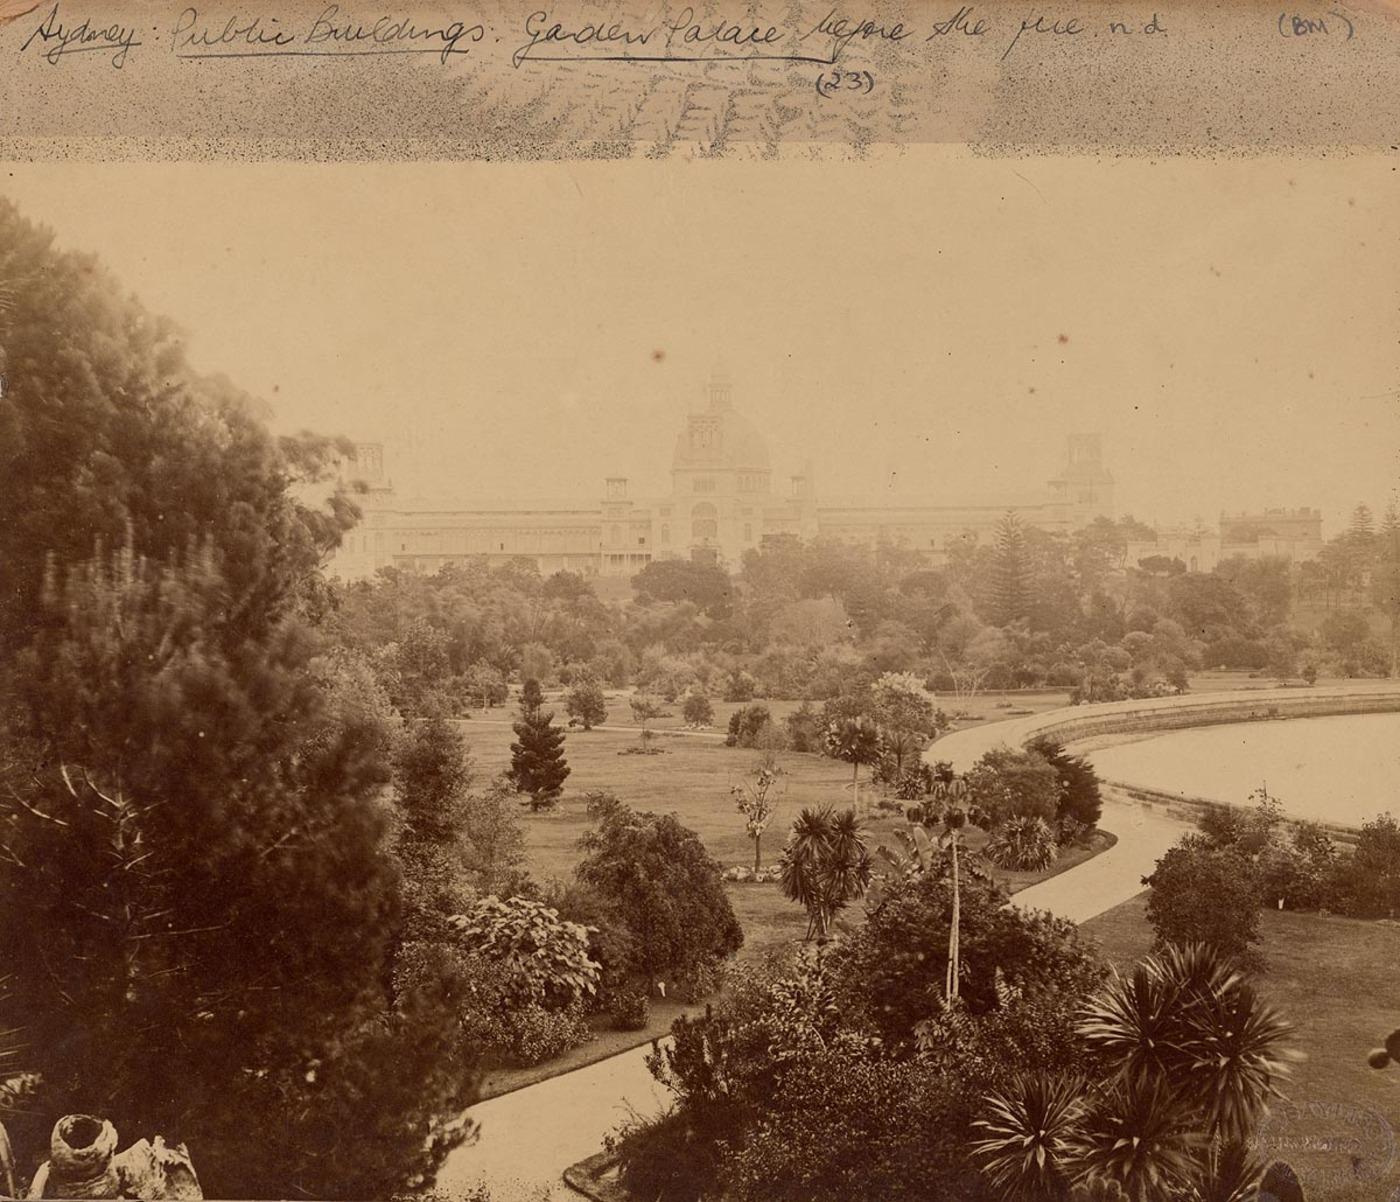 [View of Garden Palace looking south-west from top of Victoria Lodge, Botanic Gardens, Sydney], c. 1879-1882 by C. Bayliss Photo